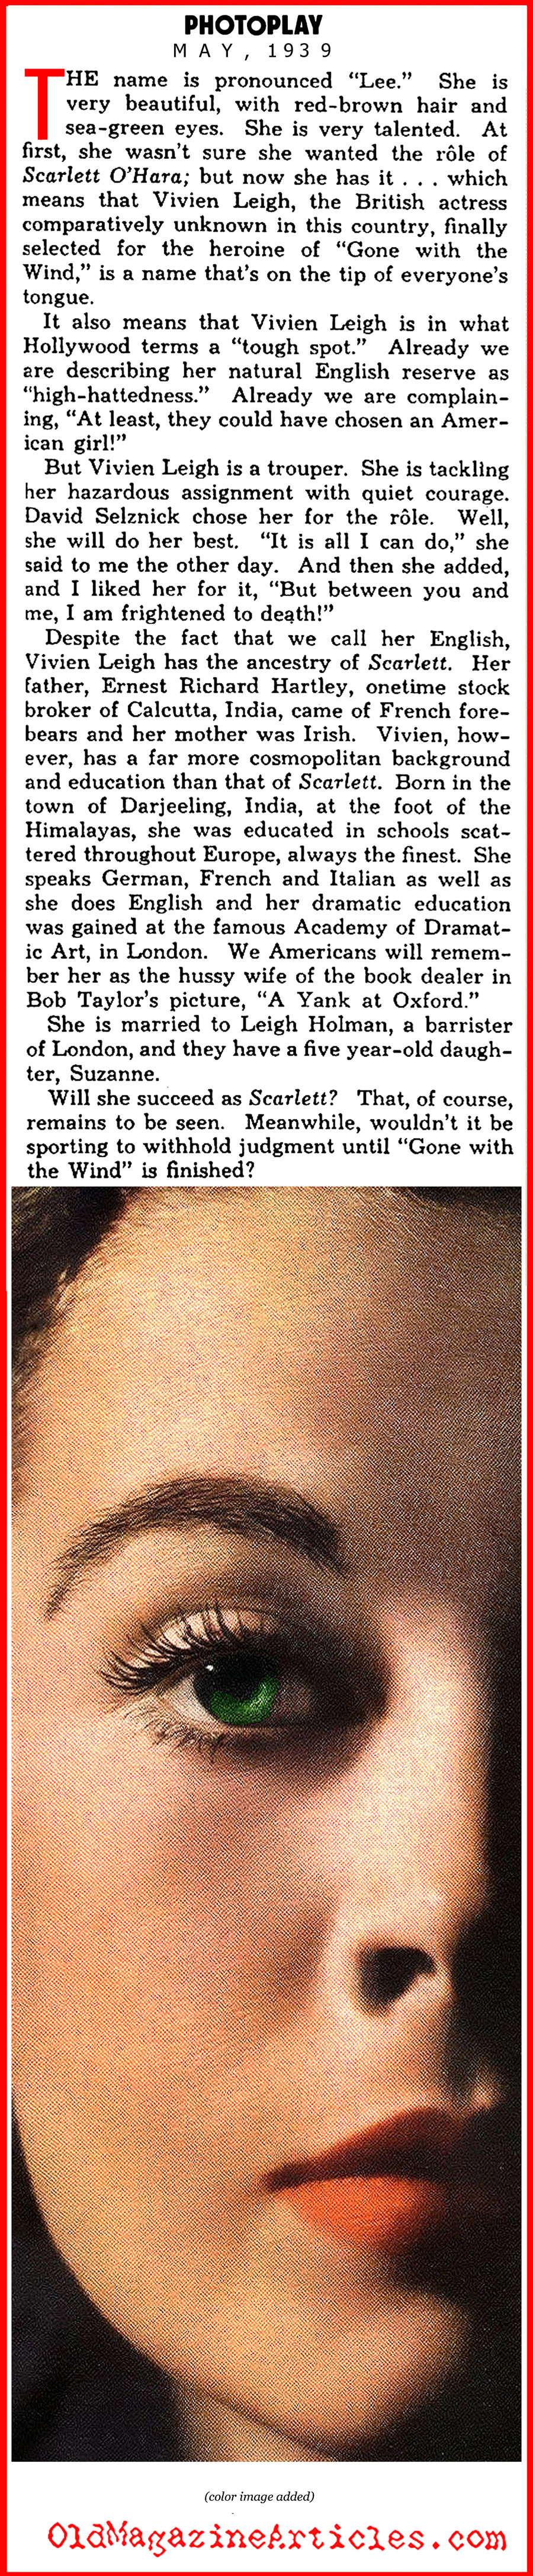 Vivien Leigh to Play Scarlet (Photoplay Magazine, 1939)